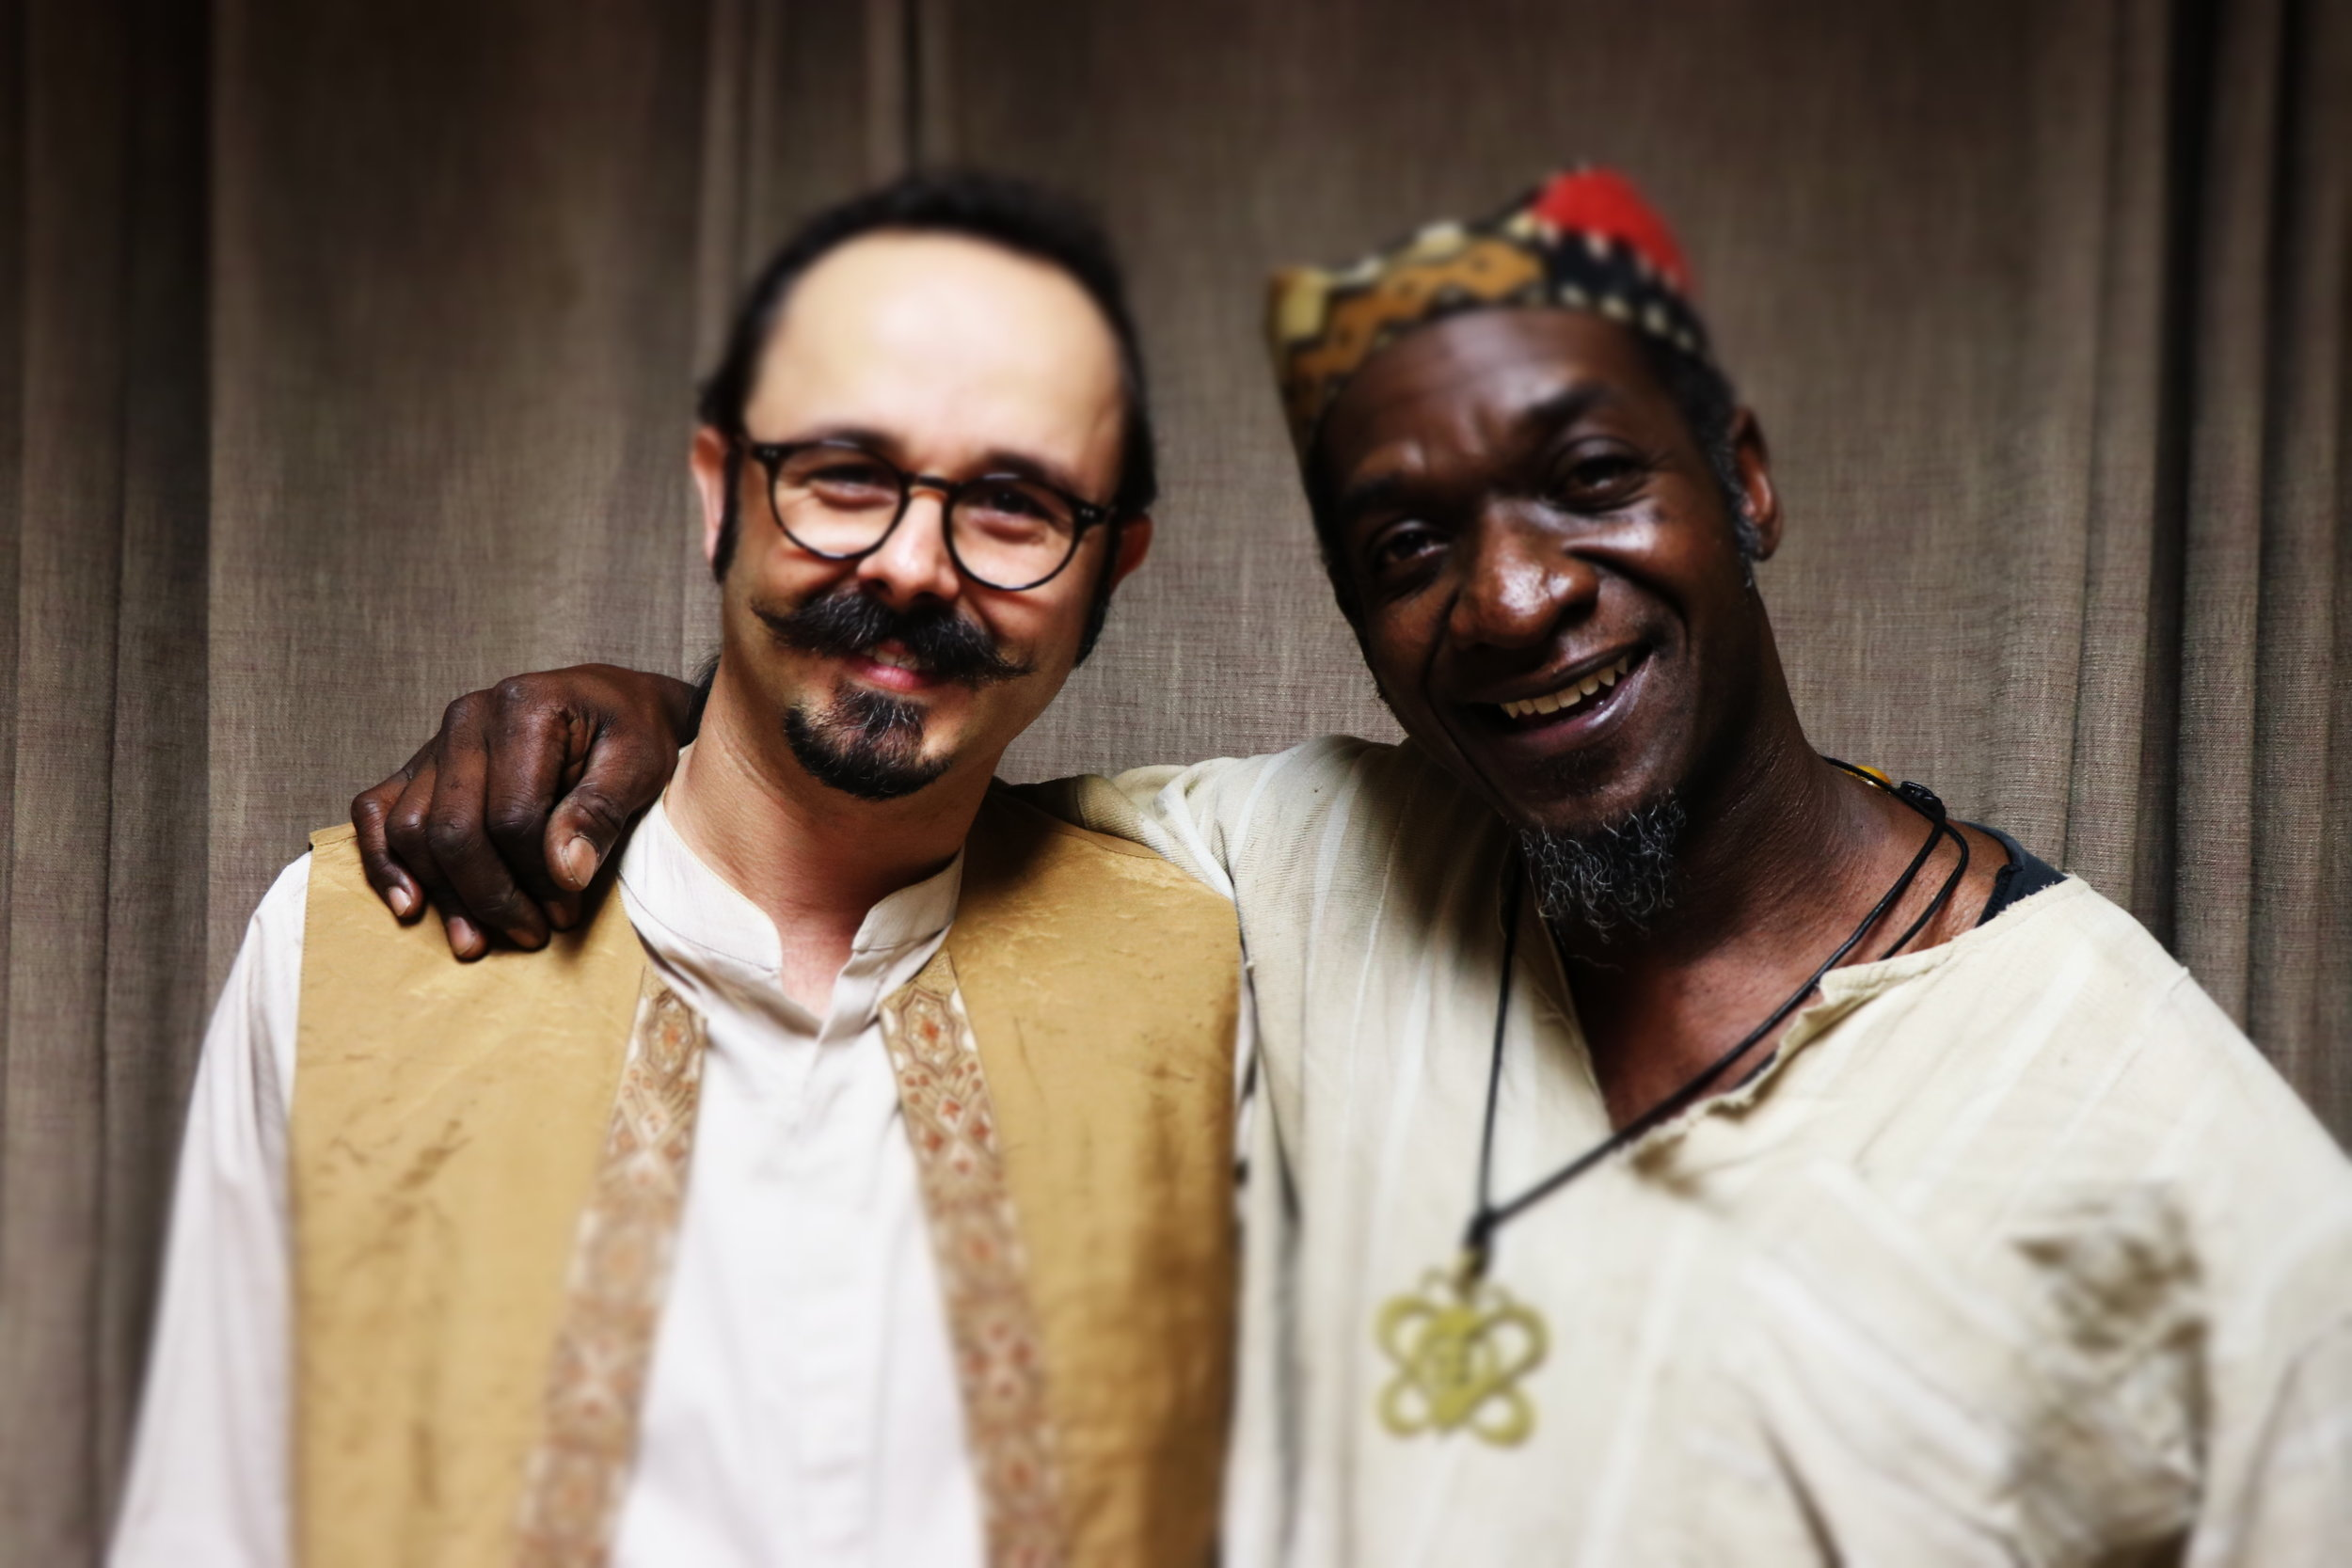 Musicians: Marcus Miller & Mehdi Bagheri - M & M...the Afro-Persian Experience